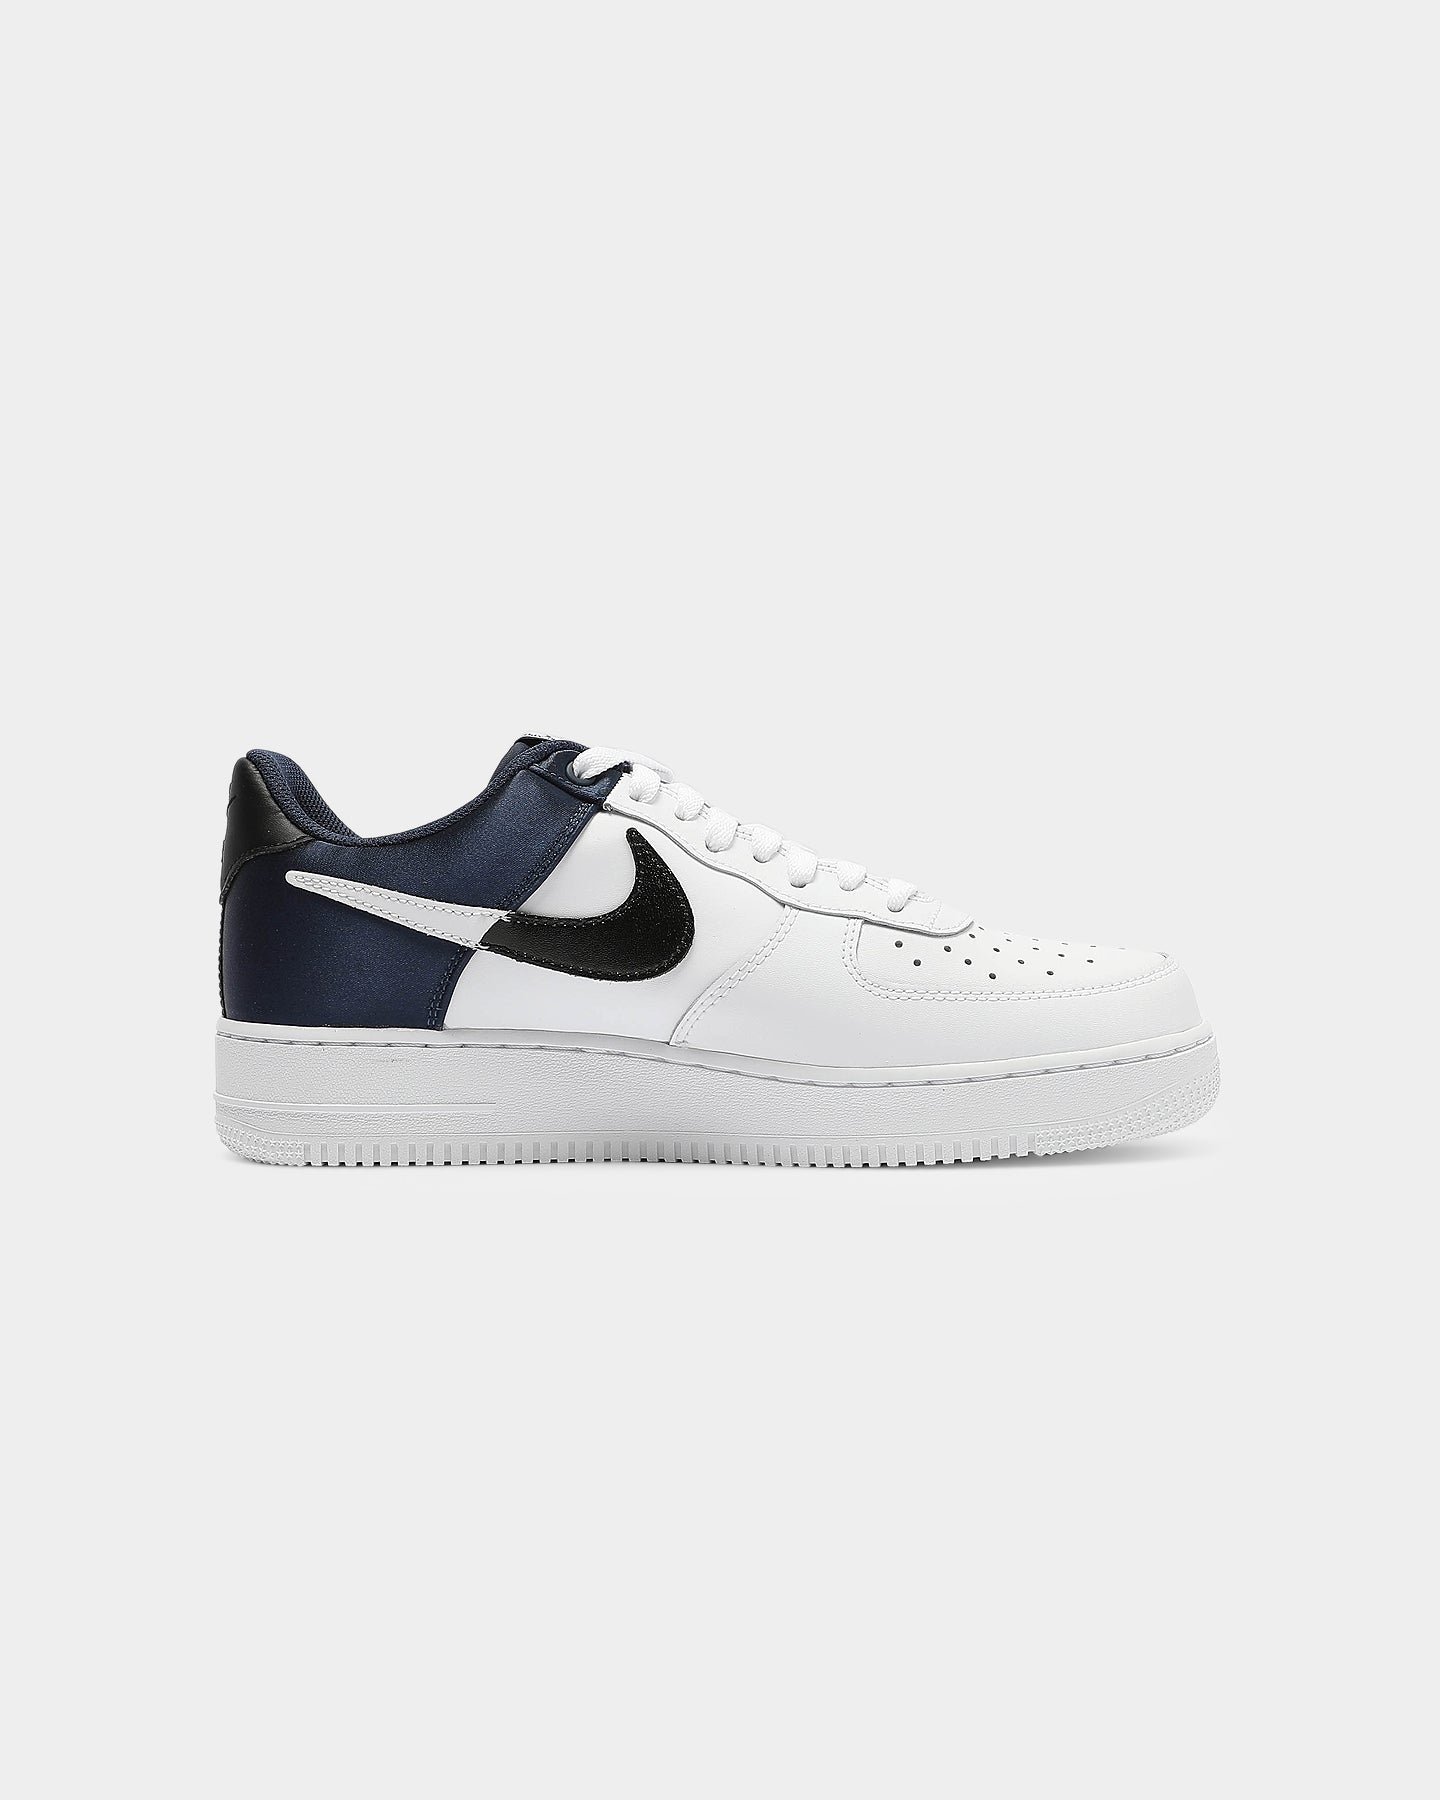 nike air force 1 mid 07 navy material